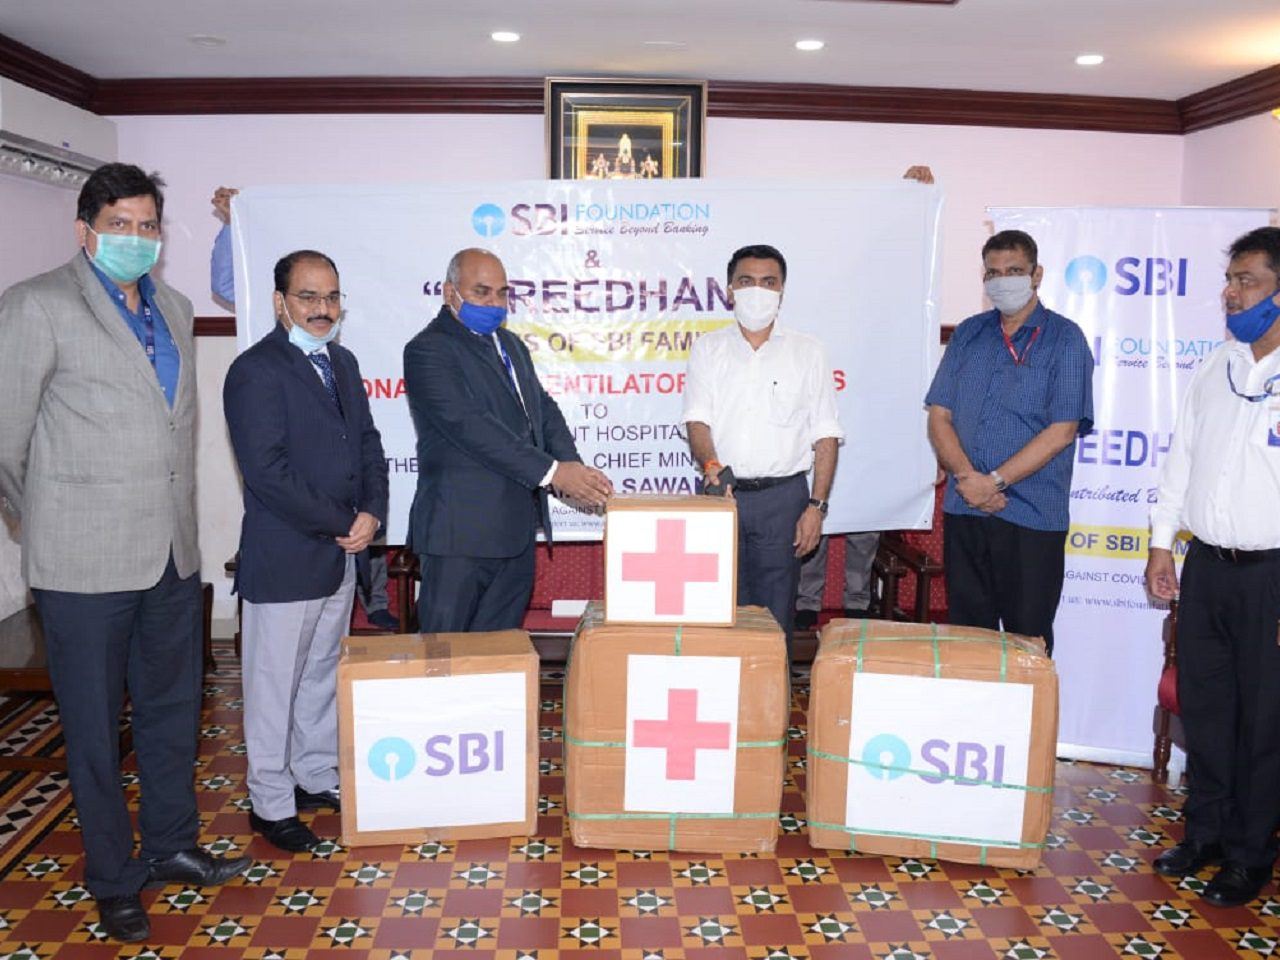 SBI donated one Ventilator and 1000 PPE Kits to the Government Hospitals at Panaji on July 14, 2020.